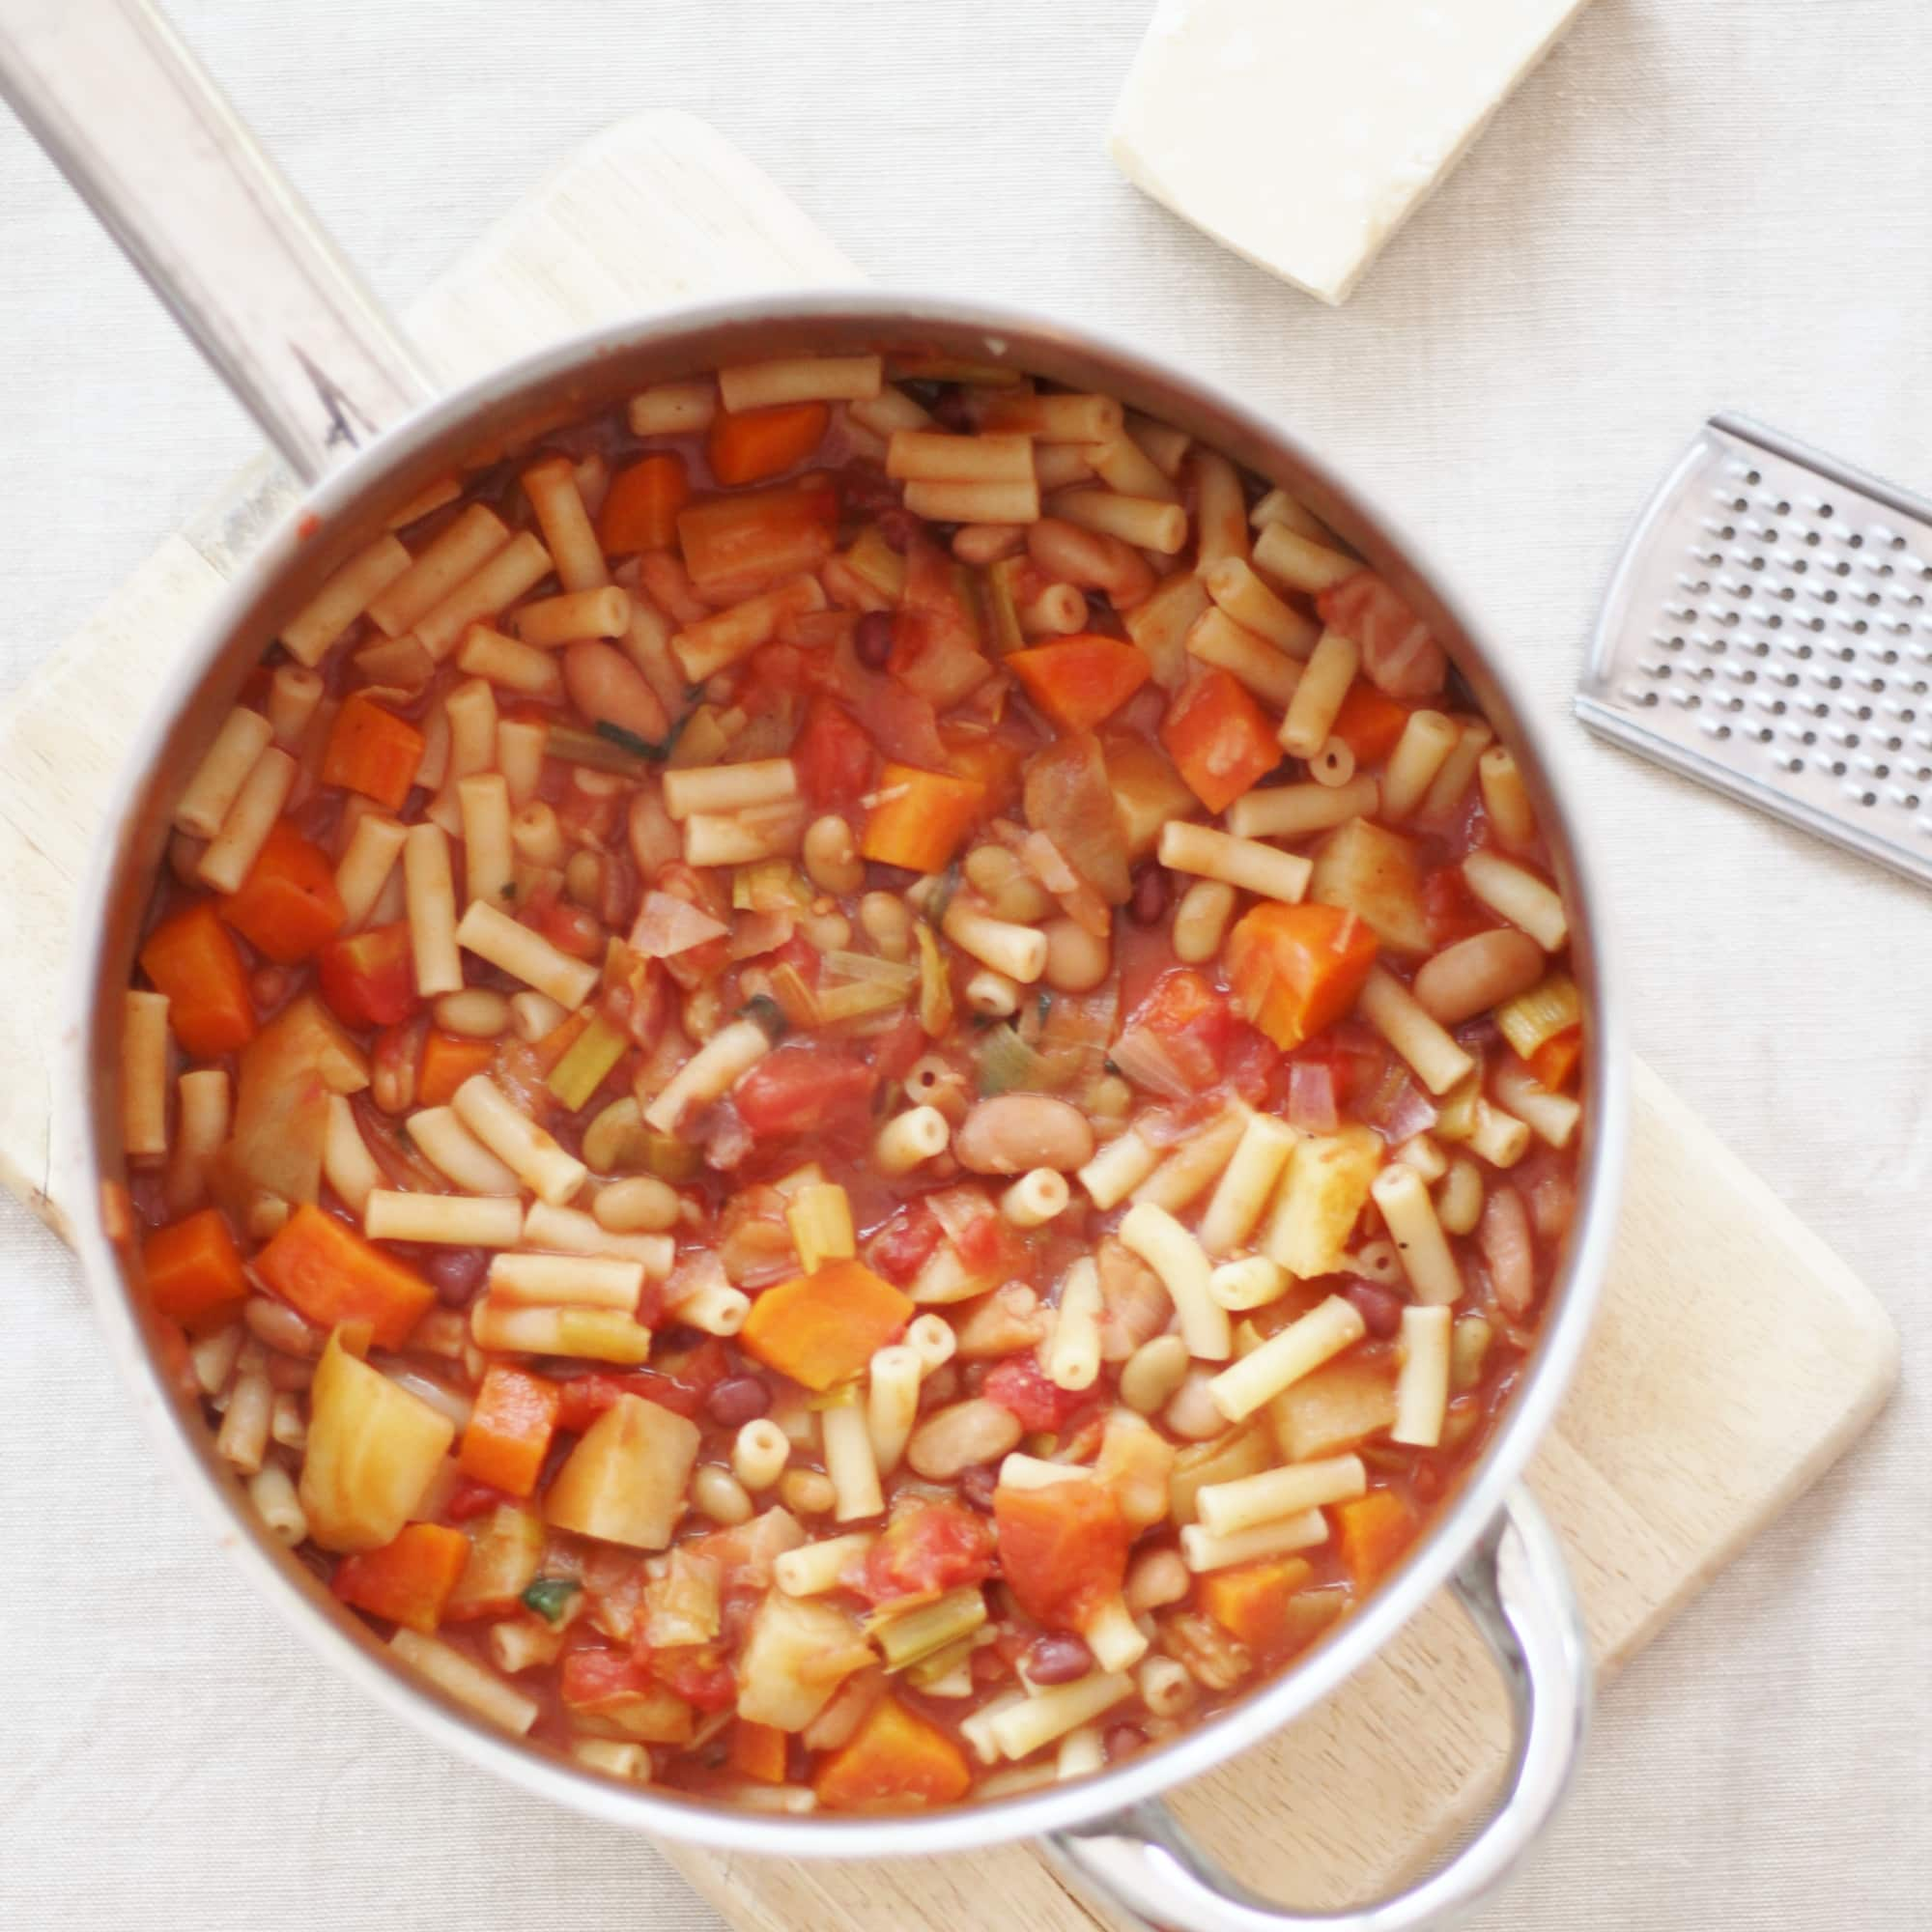 A delicious mixture of beans, pasta and root vegetables, this Tuscan Bean Stew is inspired by my student travels and perfect for an easy midweek supper. #tuscanfood #tuscanbeanstew #beanstew #beans #stew #pasta #vegetarian #easymidweekmeals #easymeals #midweekmeals #easydinners #dinnertonight #dinnertonite #familydinners #familyfood #easypeasyfoodie #cookblogshare